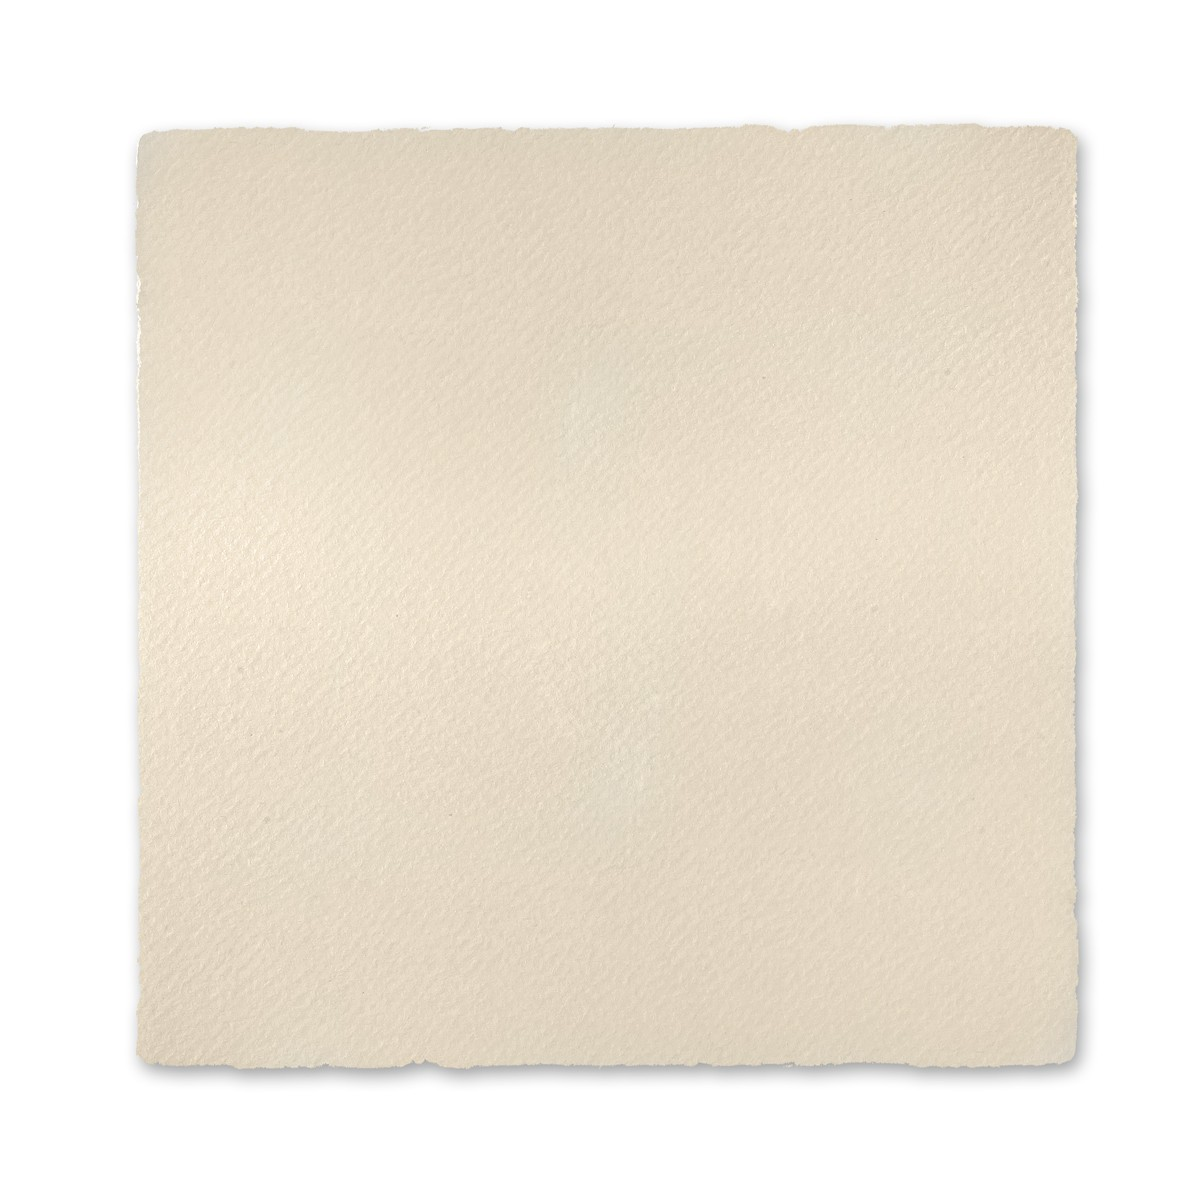 "Arturo Soft White Square Grande Invitation Cards (7SQSC) 97# Cover (7"" x 7"") Bulk Pack of 100"